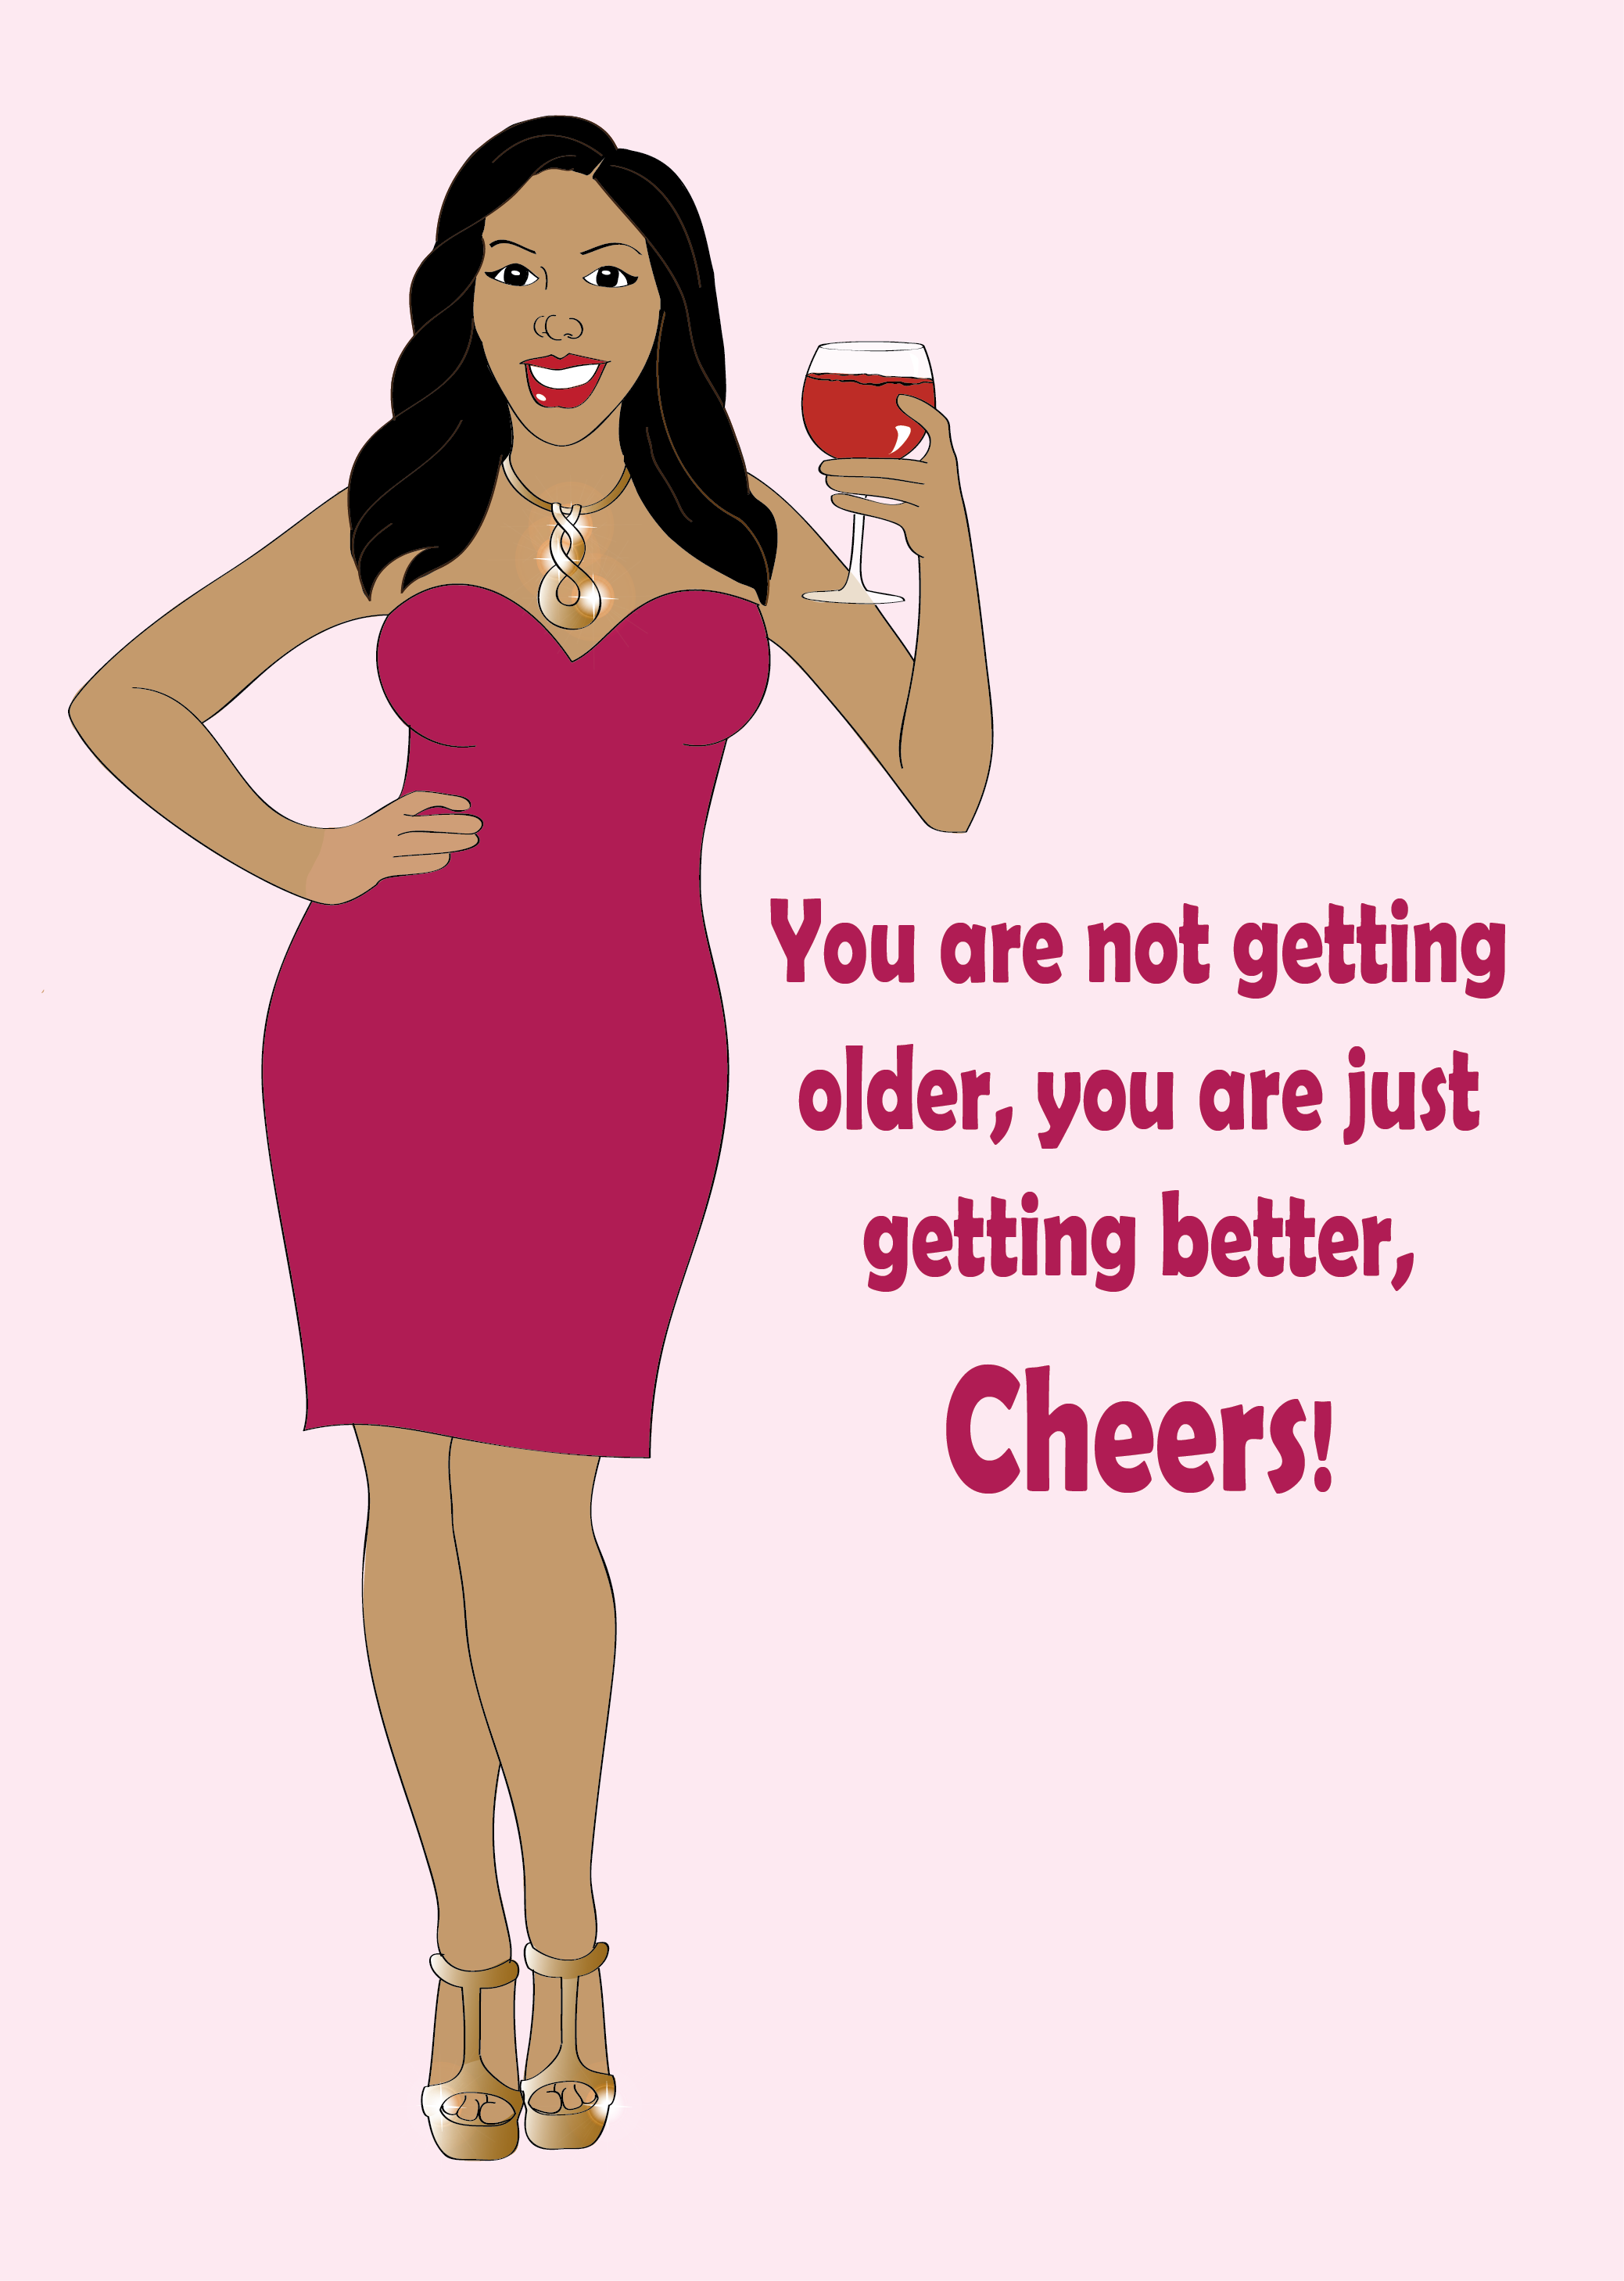 Birthday Greeting Card For Women Beautiful Black Woman Wearing A Pink Dress And Having Glass Of Wine